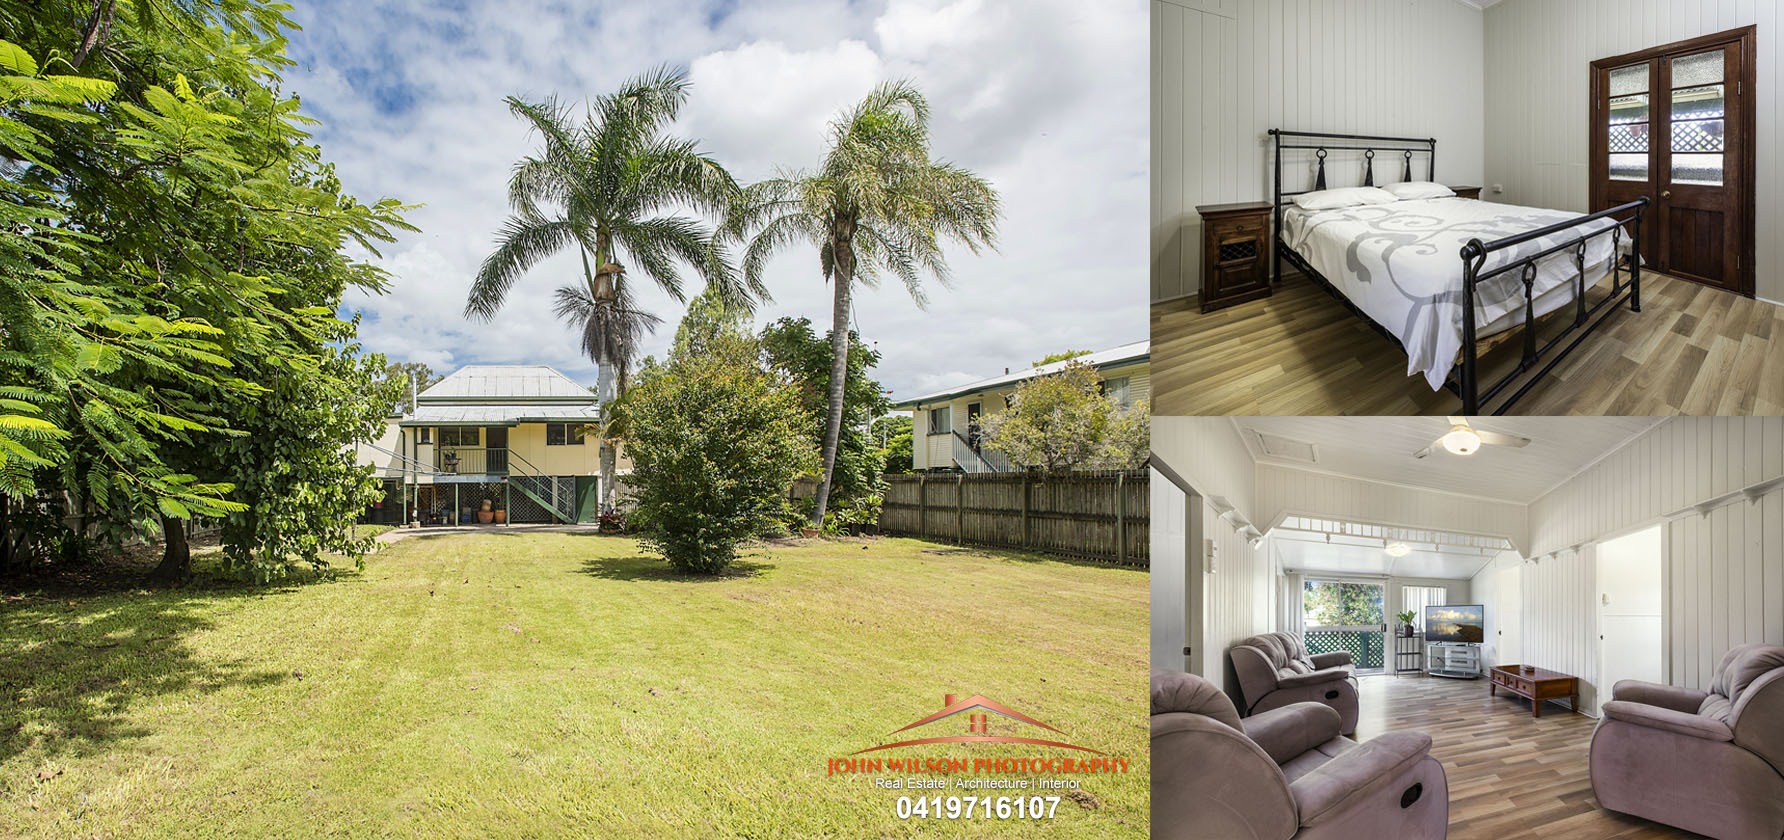 4 Puller St, Granville, 4650 For Sale - Queenslander Style Family Home